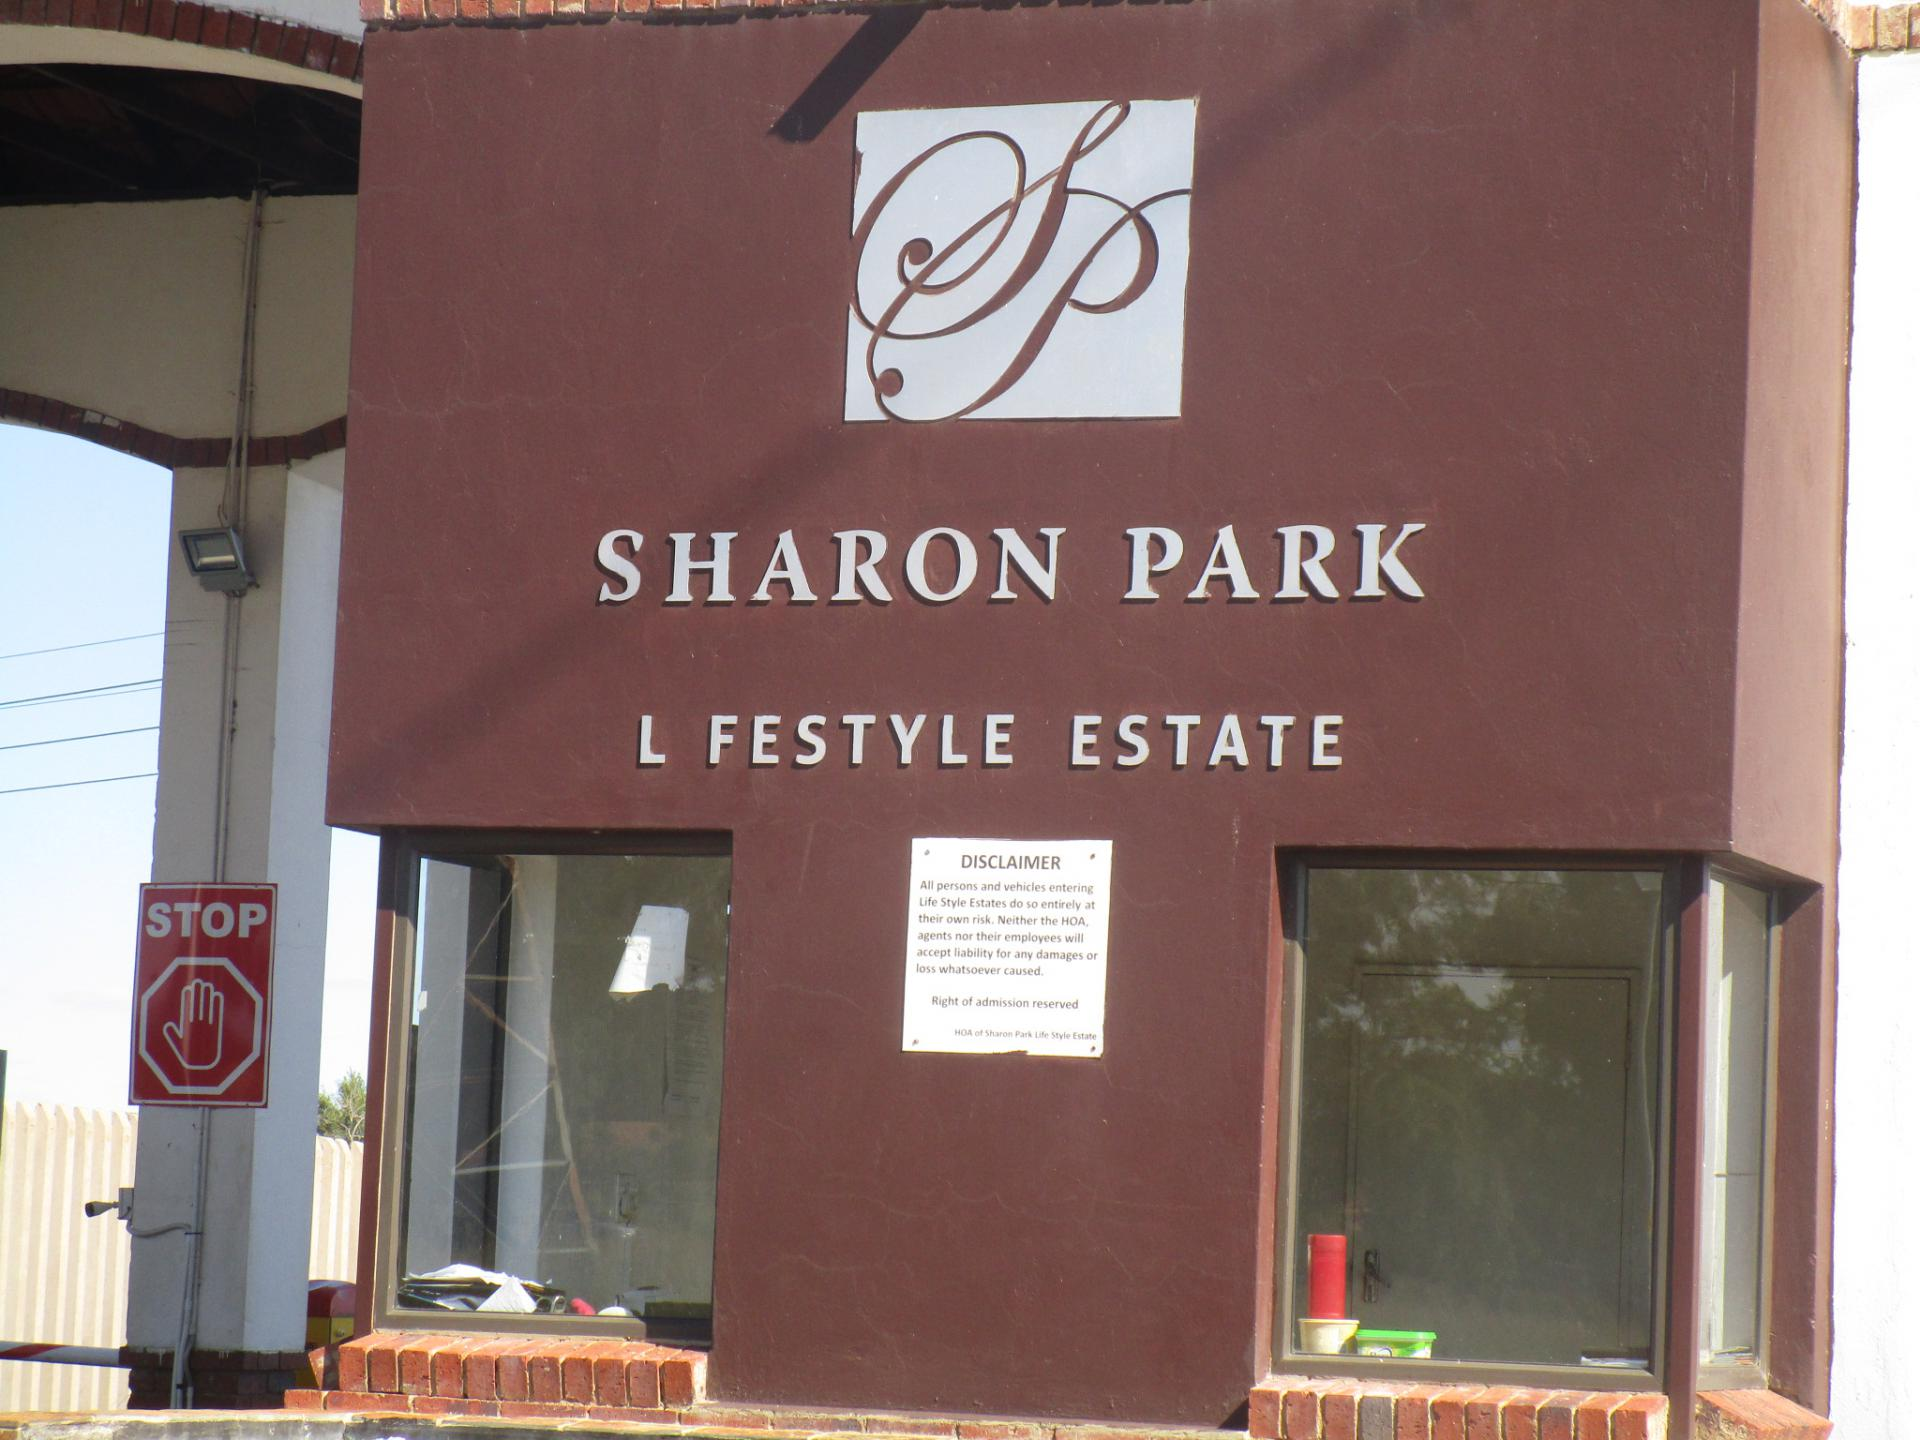 Front View of property in Sharon Park